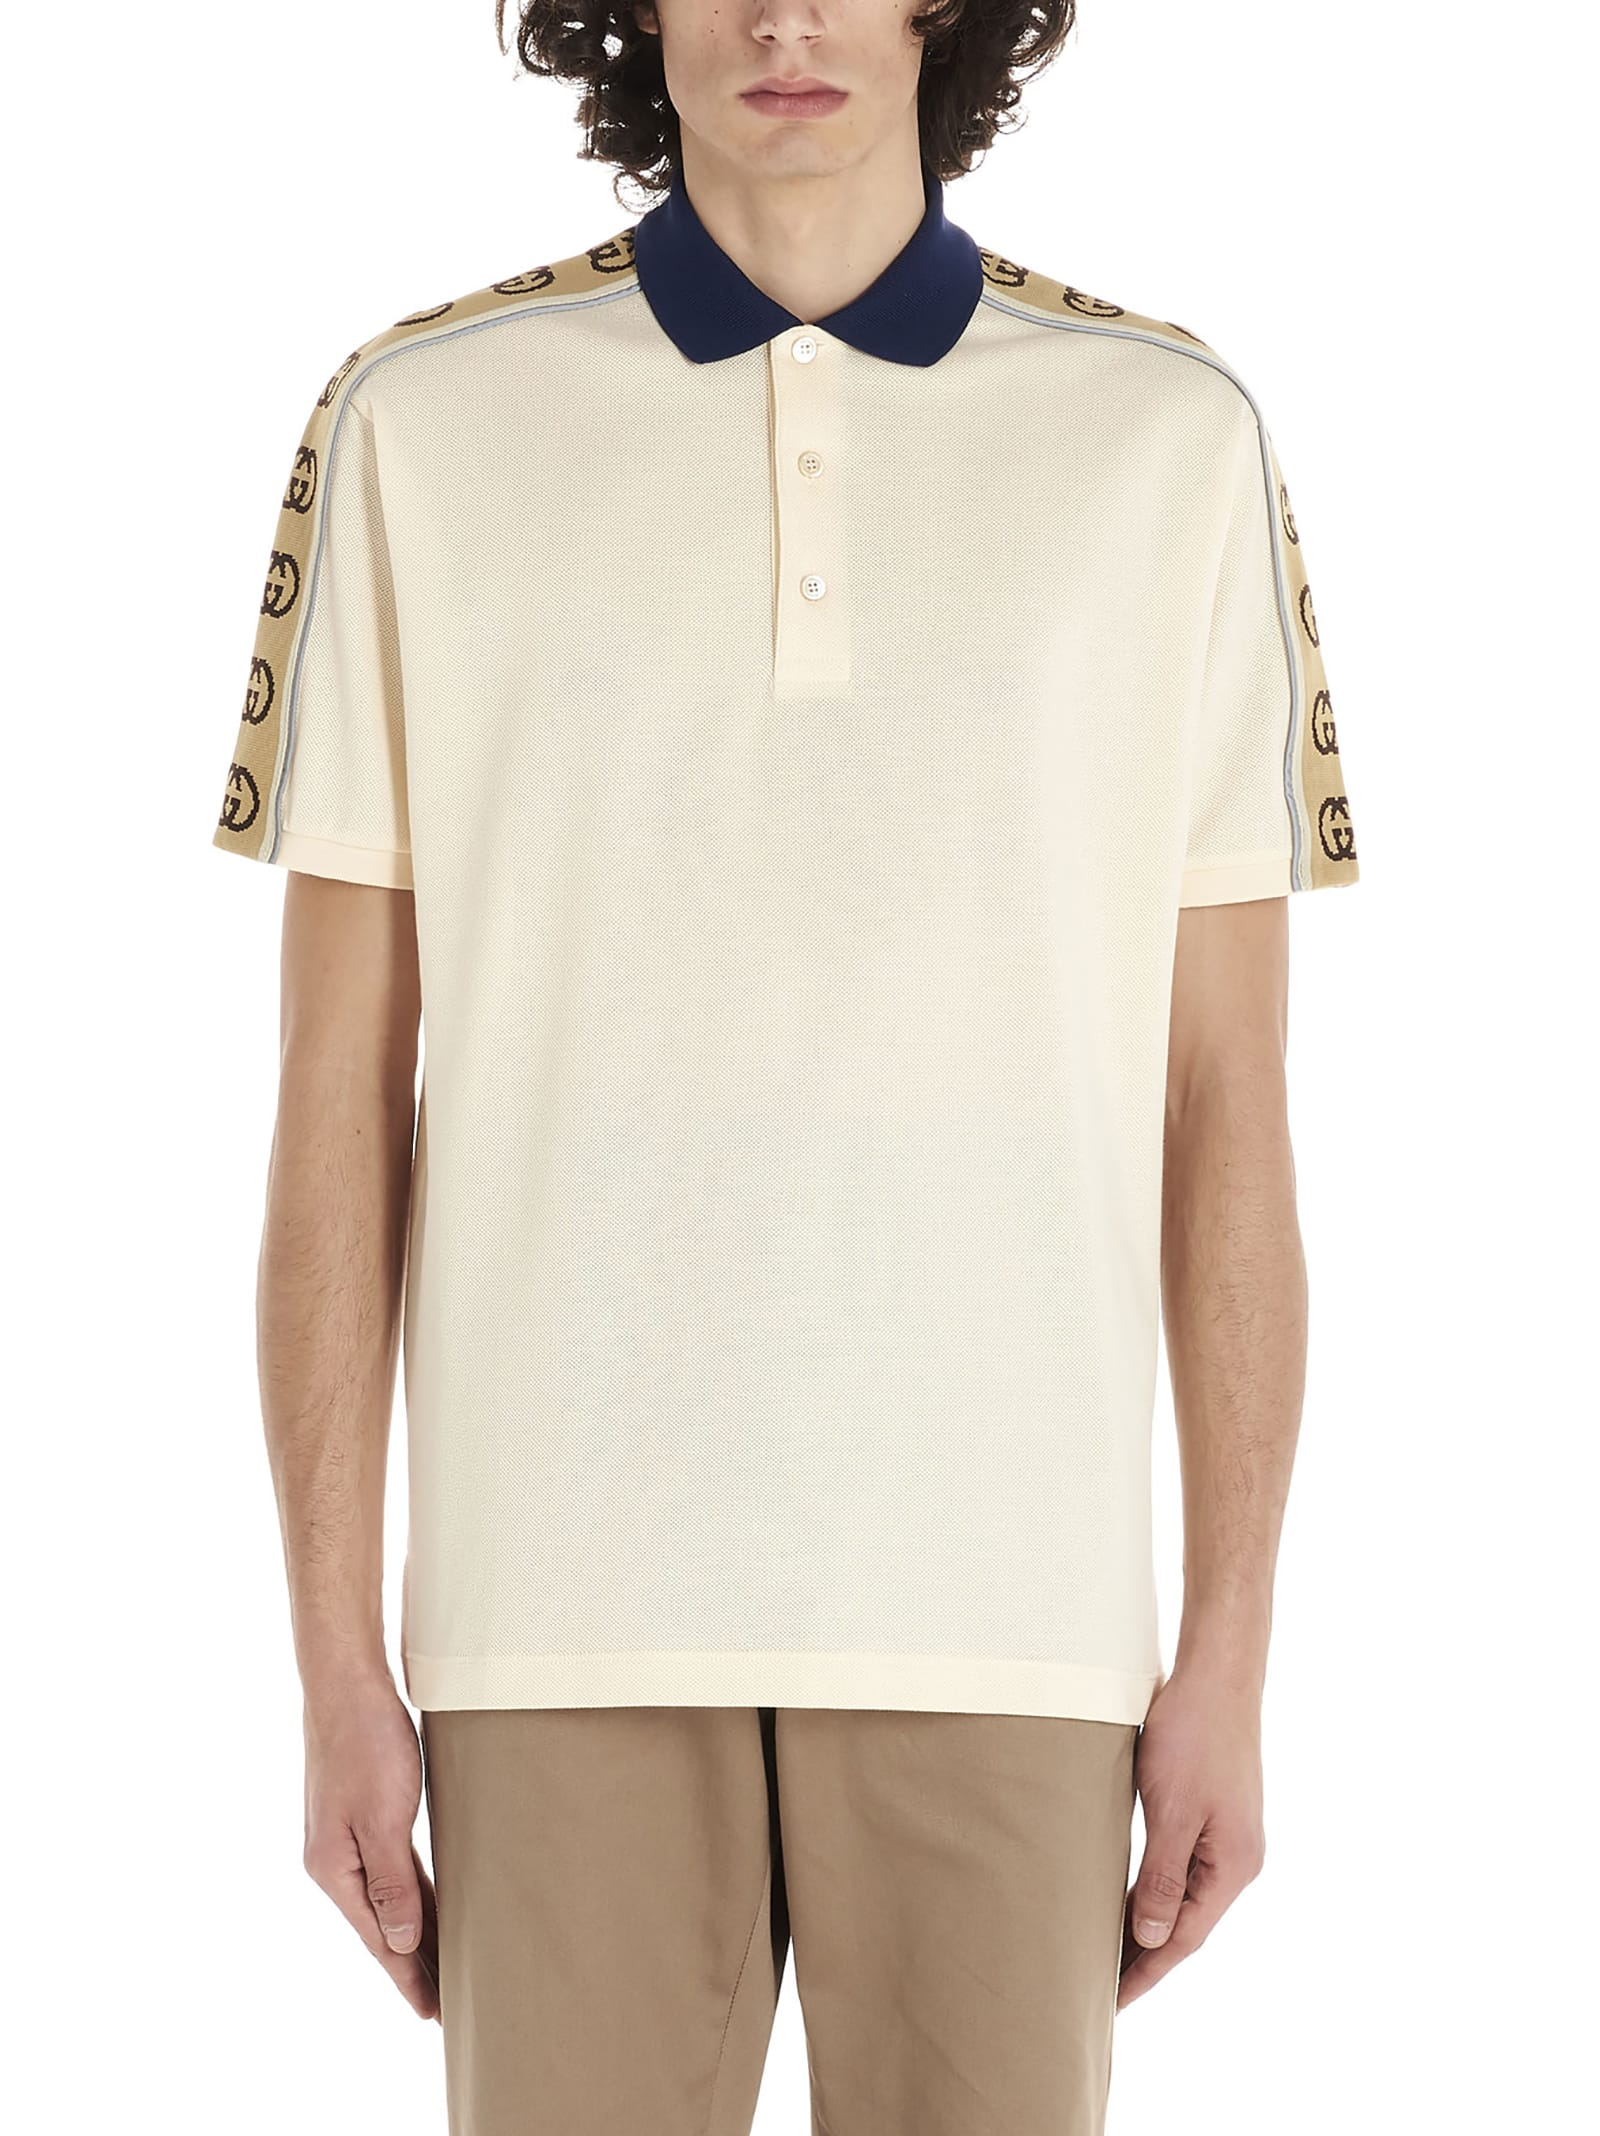 Gucci gucci Trim Polo